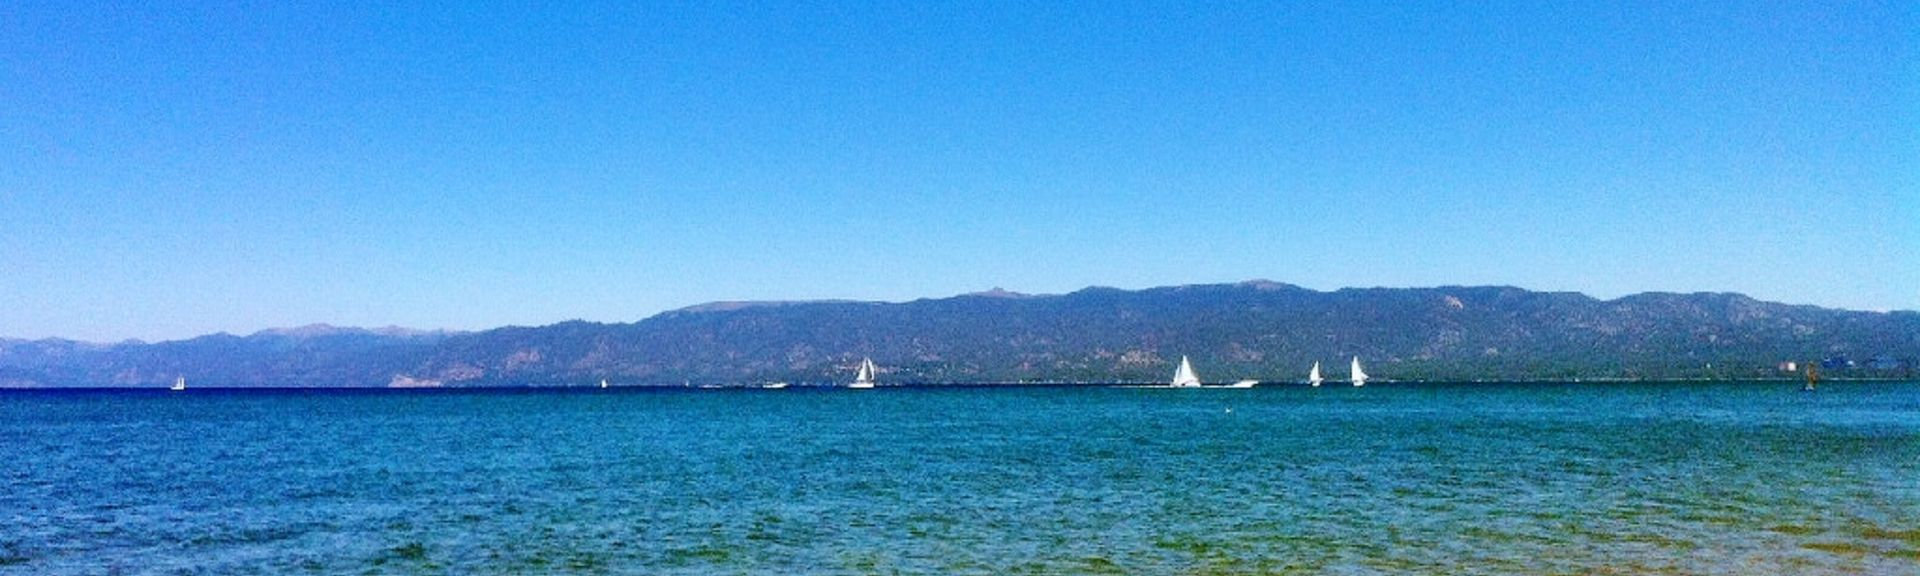 Al Tahoe, South Lake Tahoe, California, United States of America